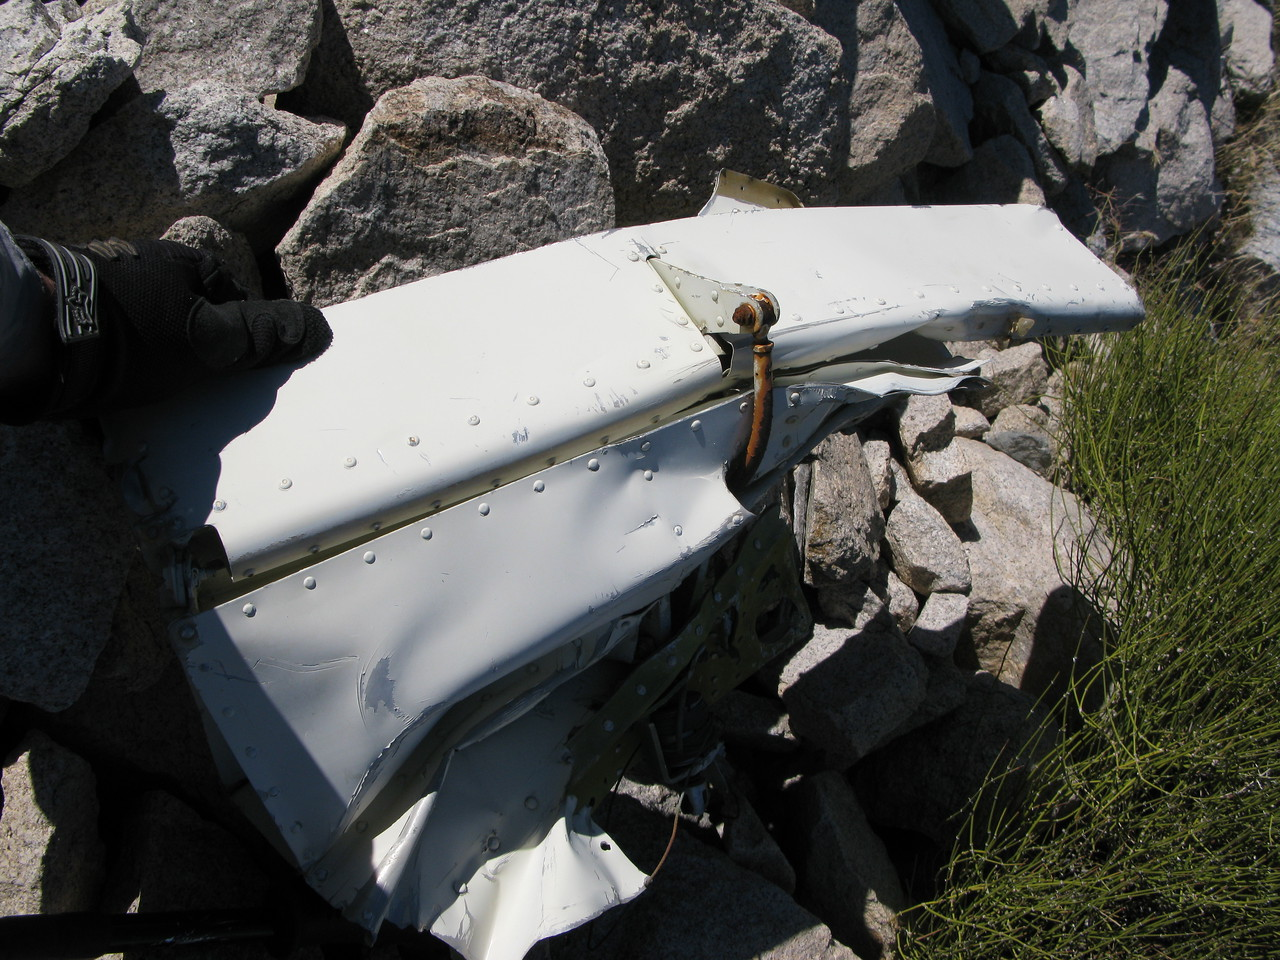 The aileron trim tab was barely recognizable. In a catastrophic accident such as this, the aileron trim tab can be confused with the elevator trim/anti-servo tab. The big difference is the larger attach point on the aileron's tab.